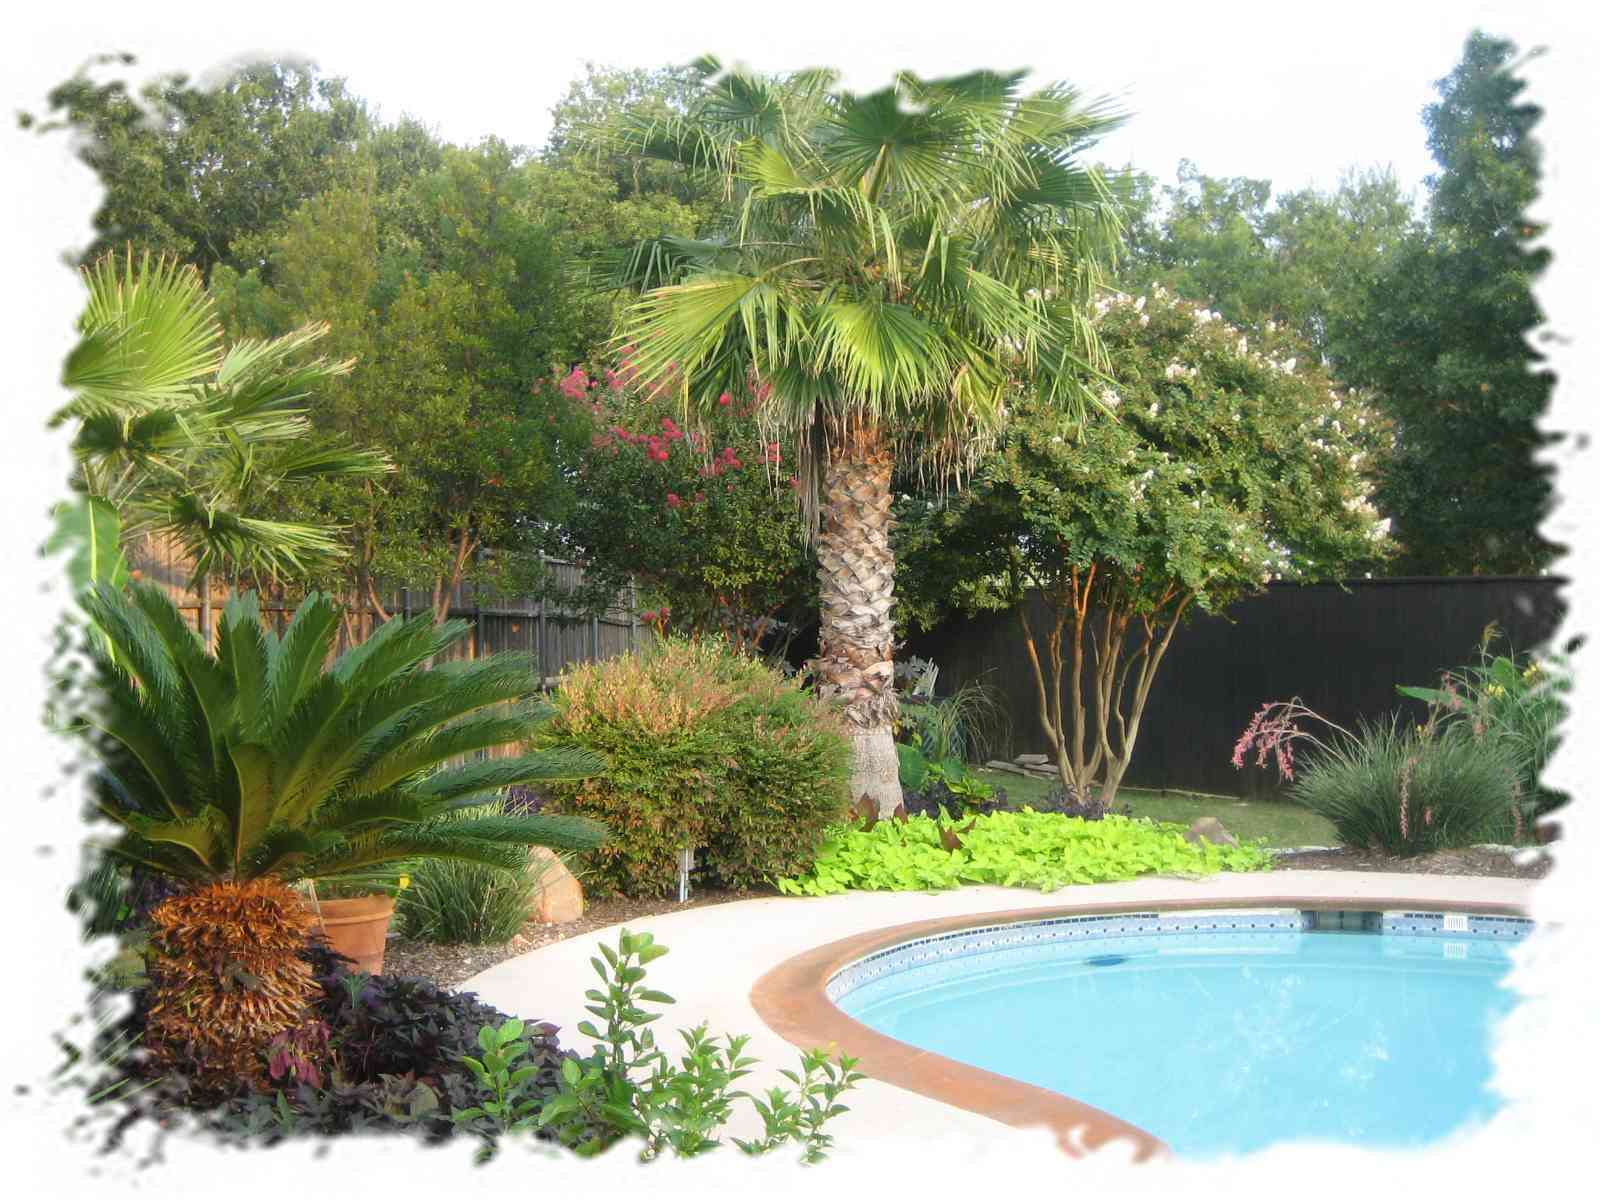 Free photo: palm trees backyard - Backyard, Branches ... on Palm Tree Backyard Ideas id=44978